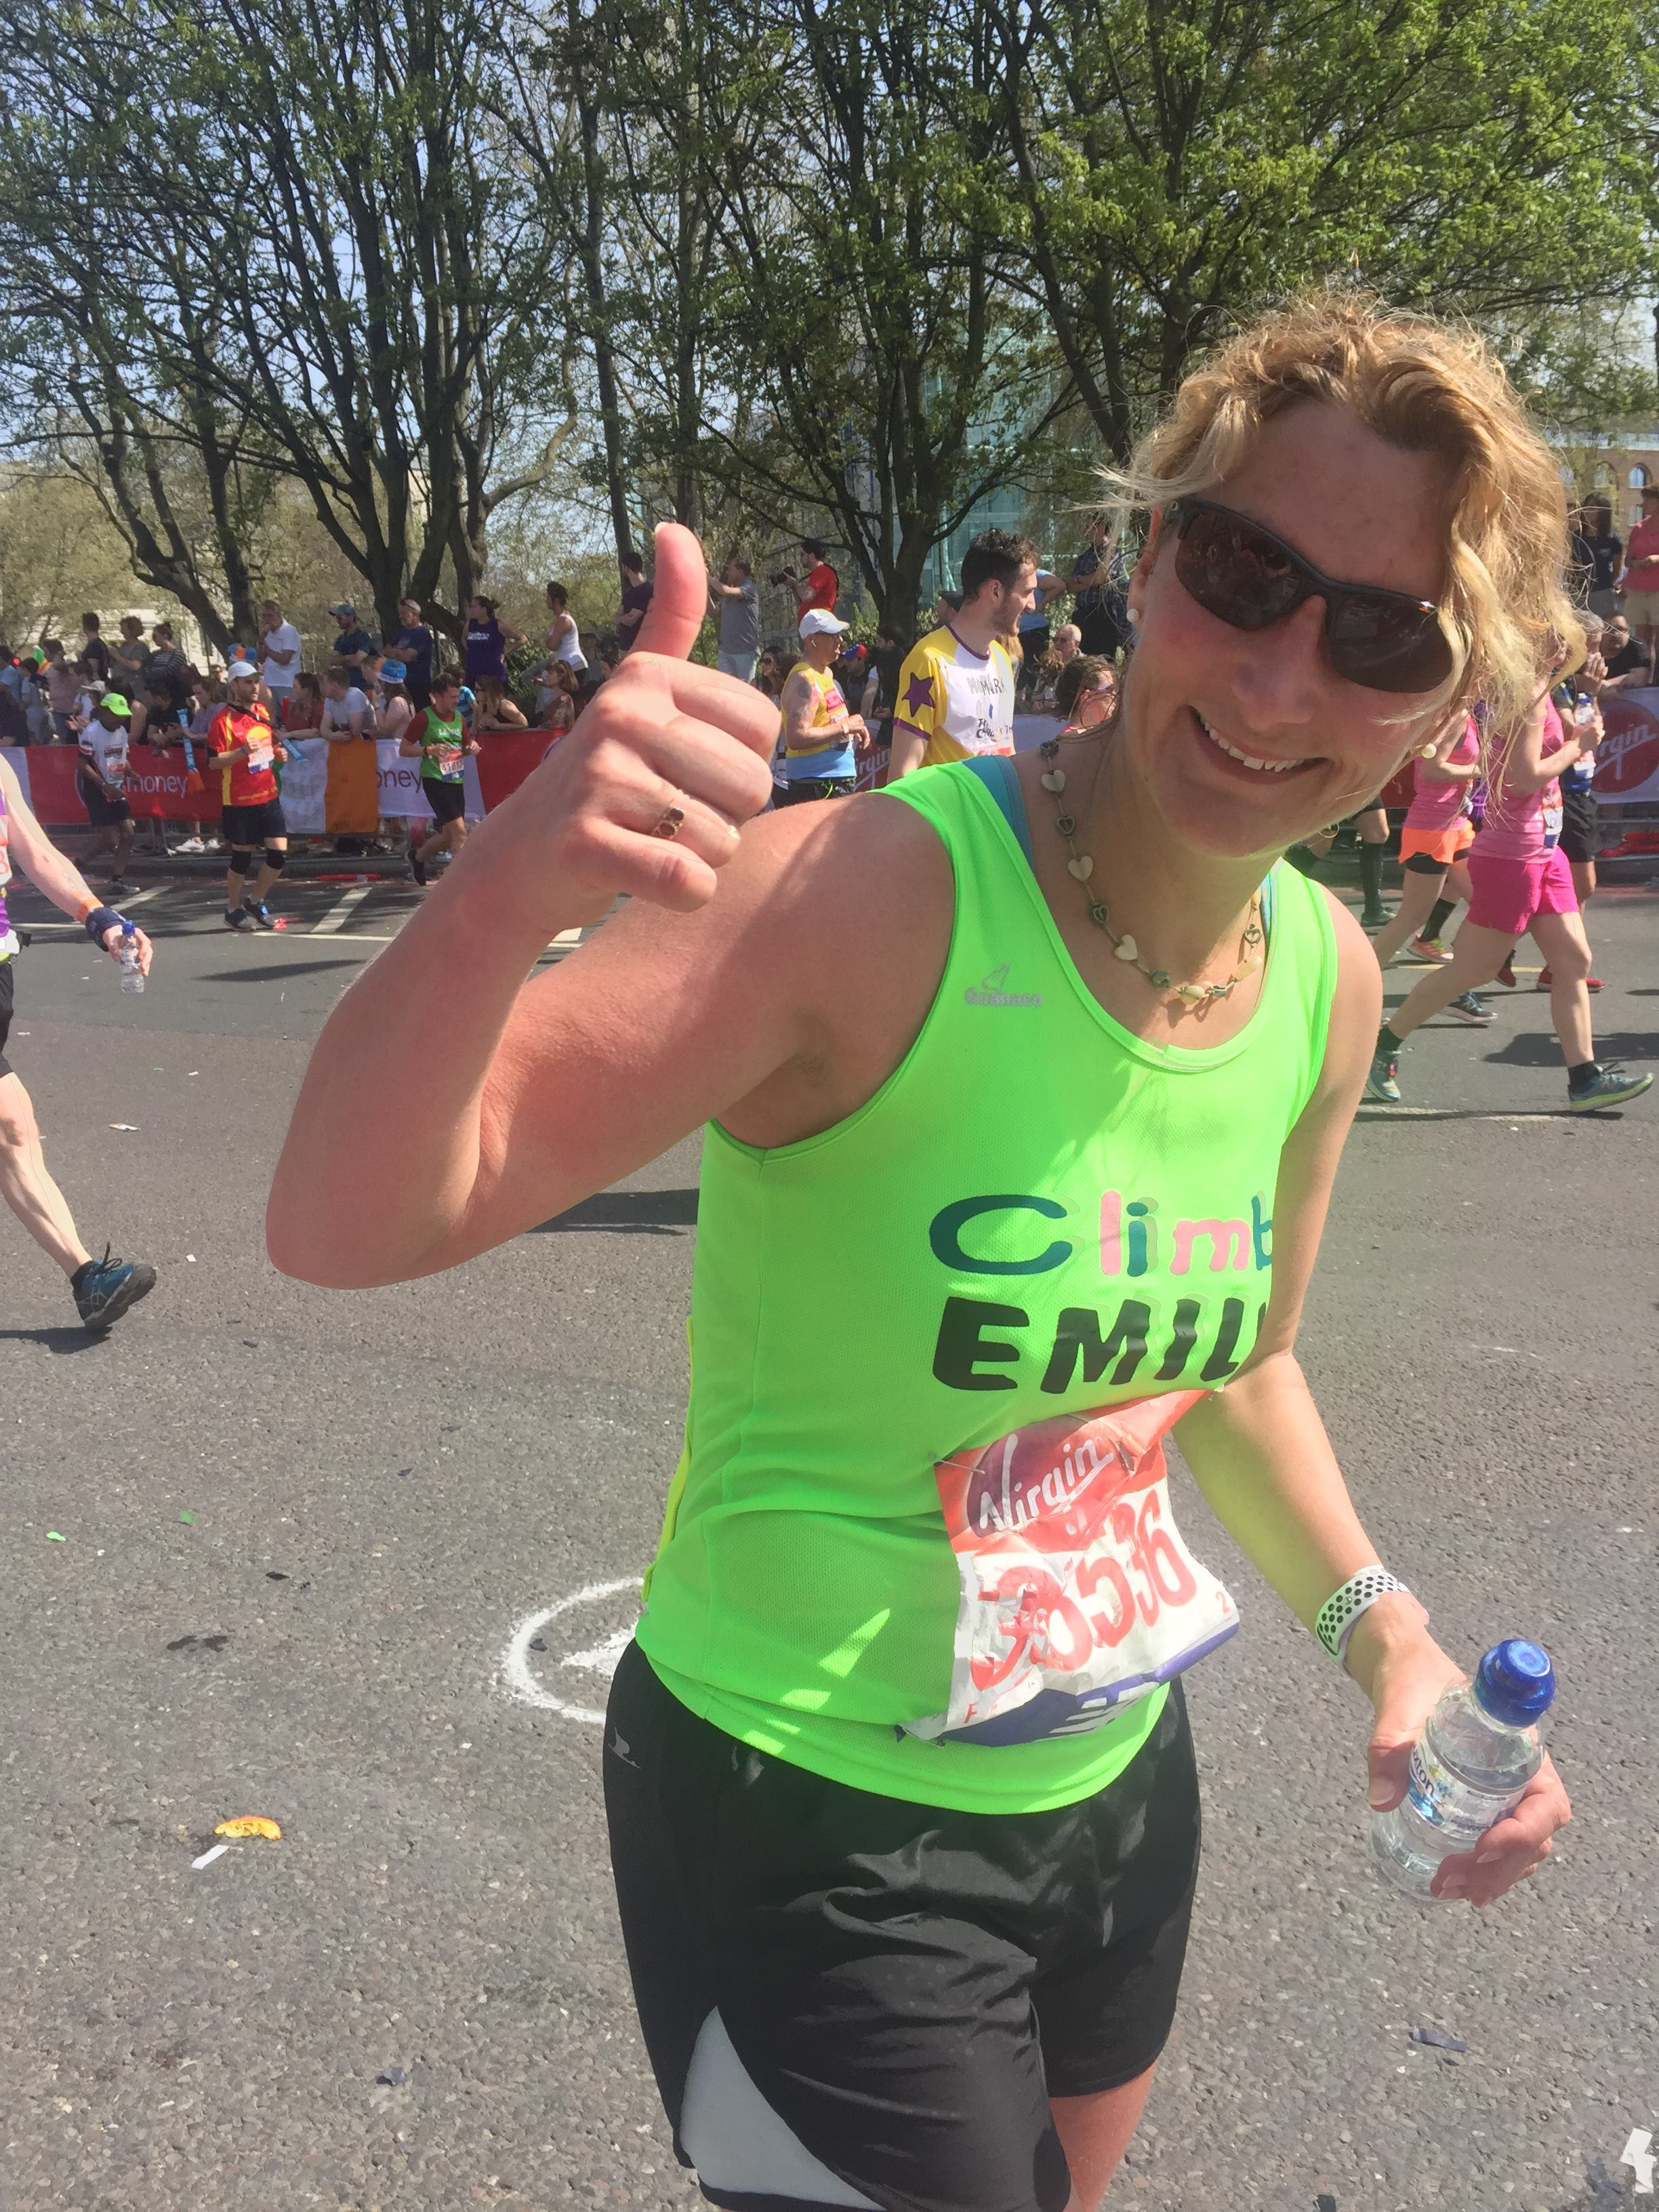 London Marathon 2018 – Go Team Climb! - Metabolic Support UK